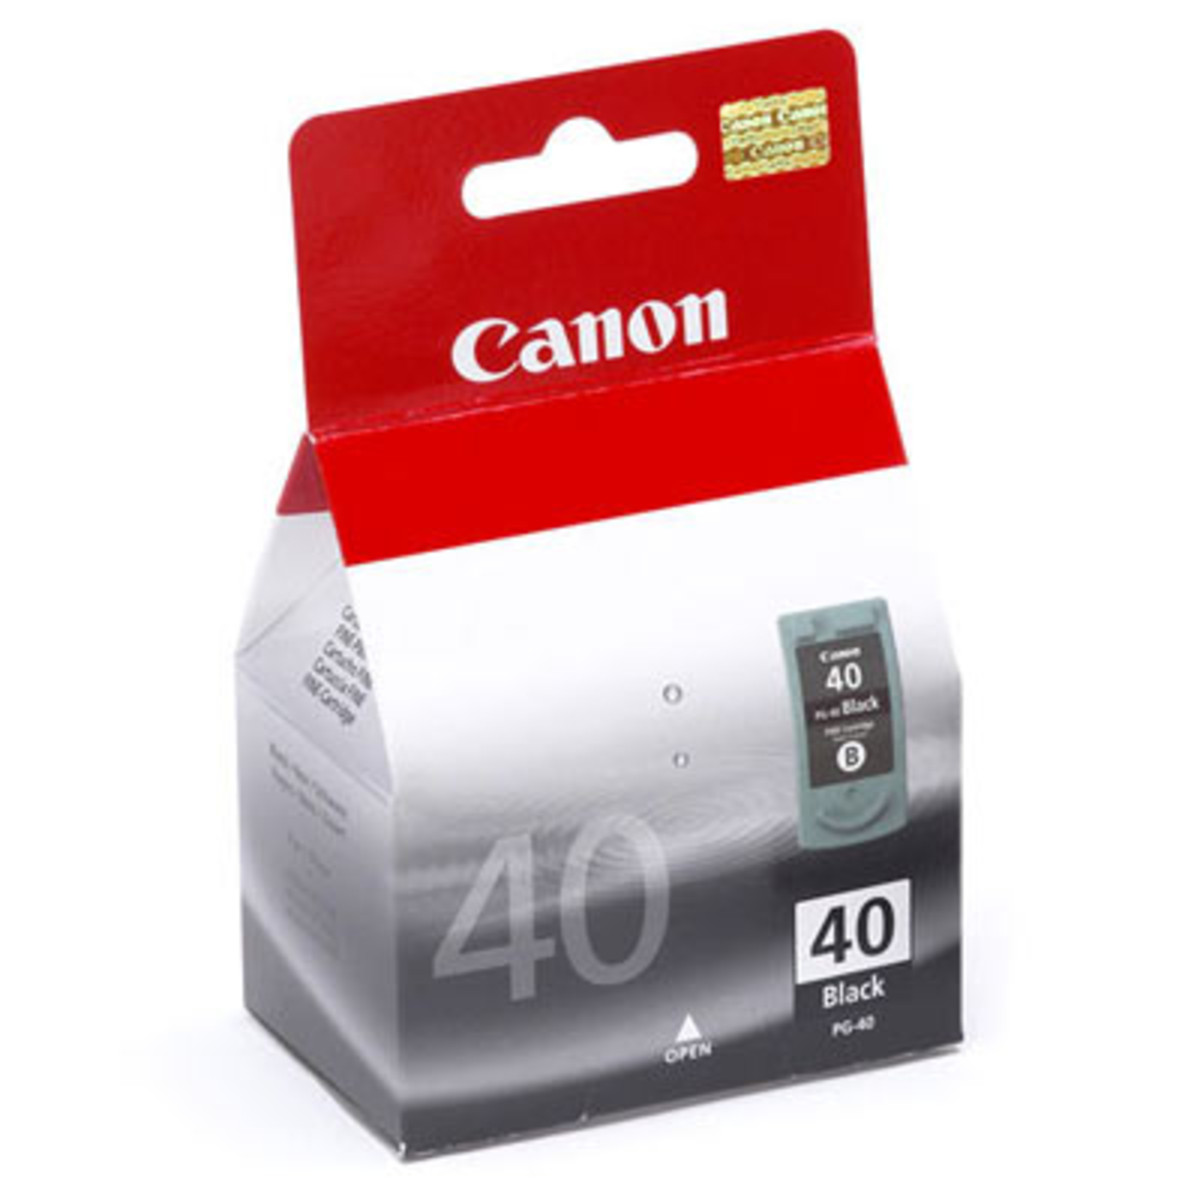 Canon PG-40 FINE Black Ink Cartridge